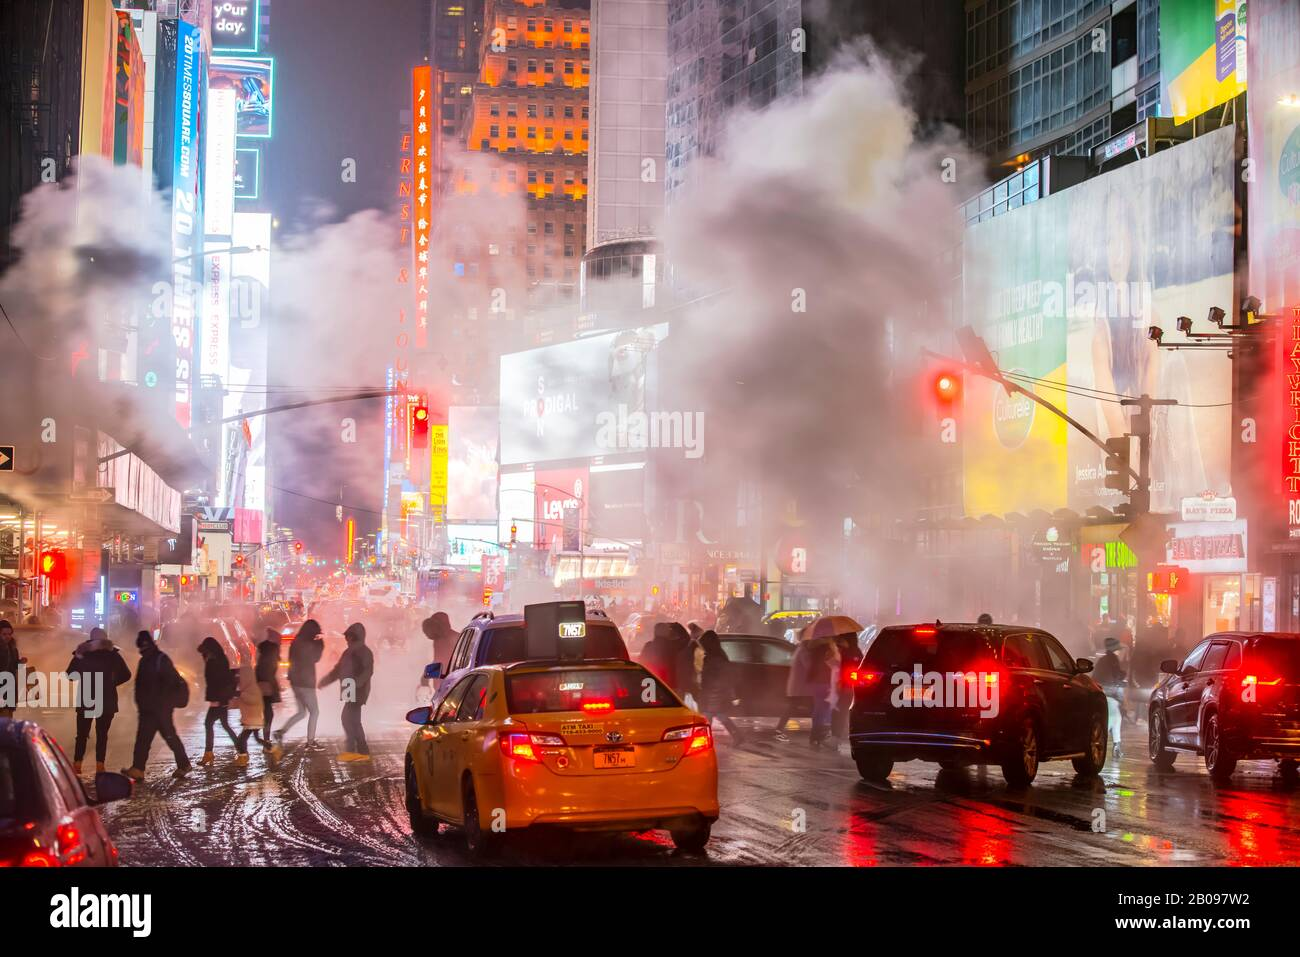 The drifting steam surrounds people, traffic and Times Square buildings in the snowy night at Midtown Manhattan New York City NY USA on Jan. 18 2020 Stock Photo